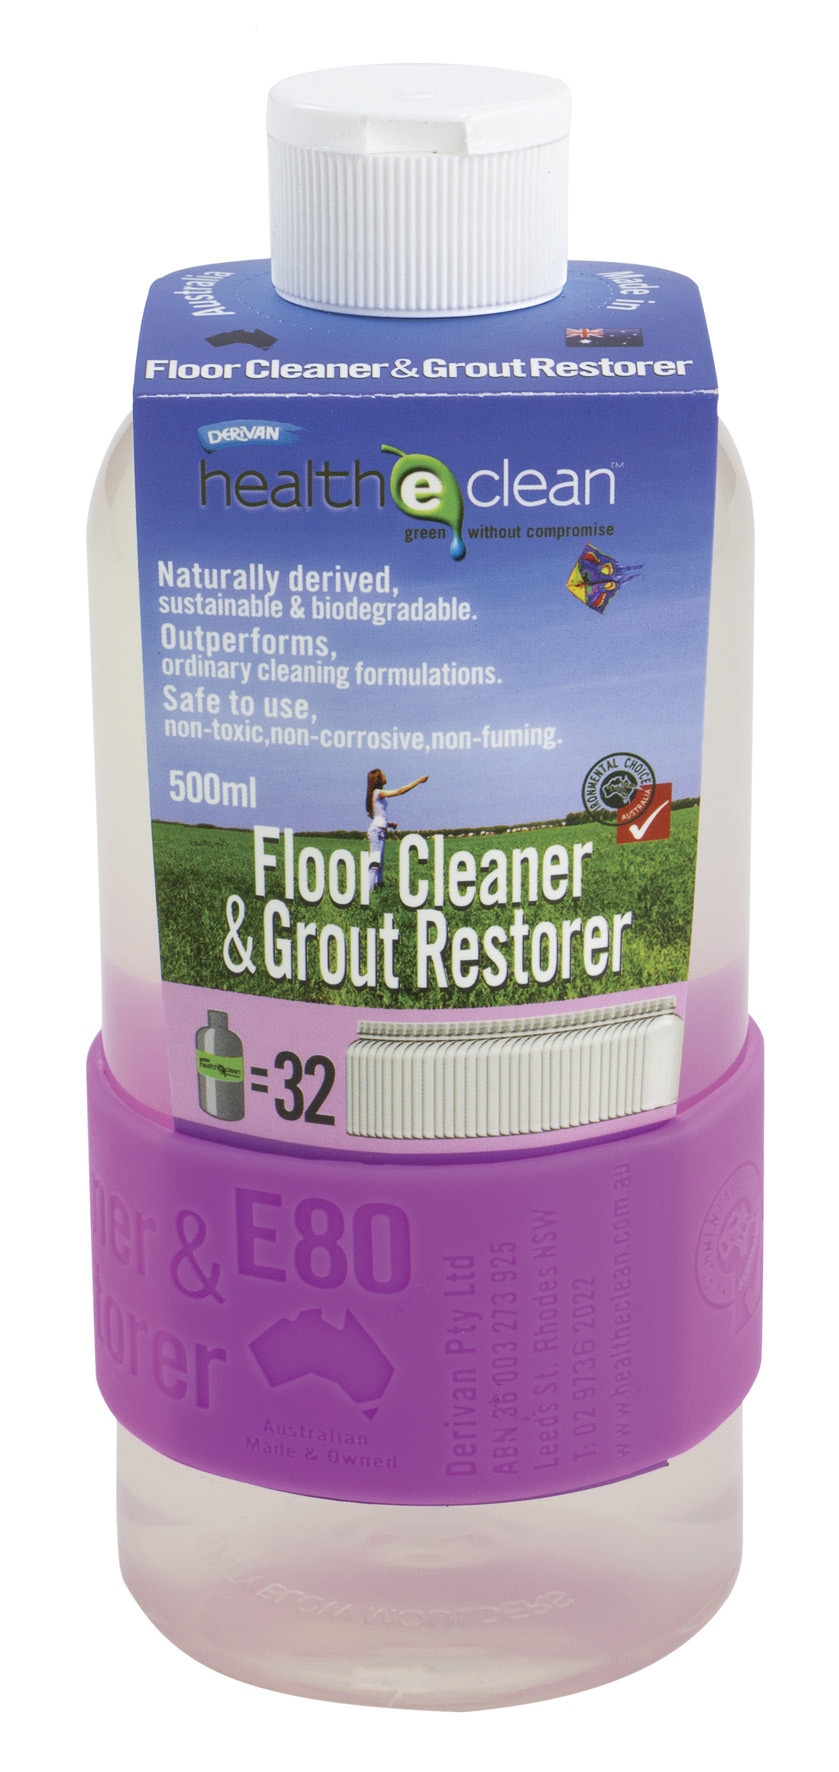 E80 FLOOR CLEANER AND GROUT RESTORER